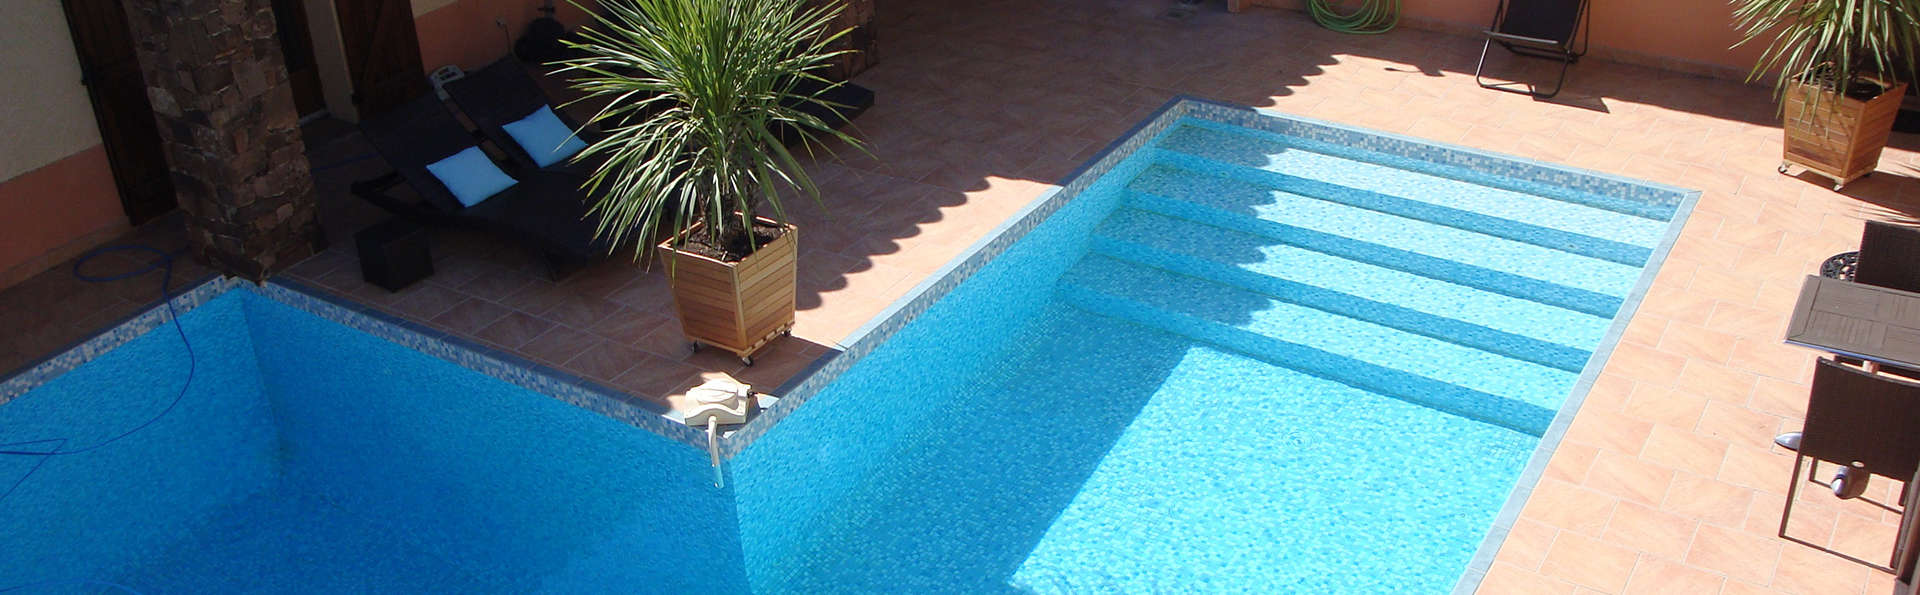 Le Patio Bleu - Edit_Pool.jpg